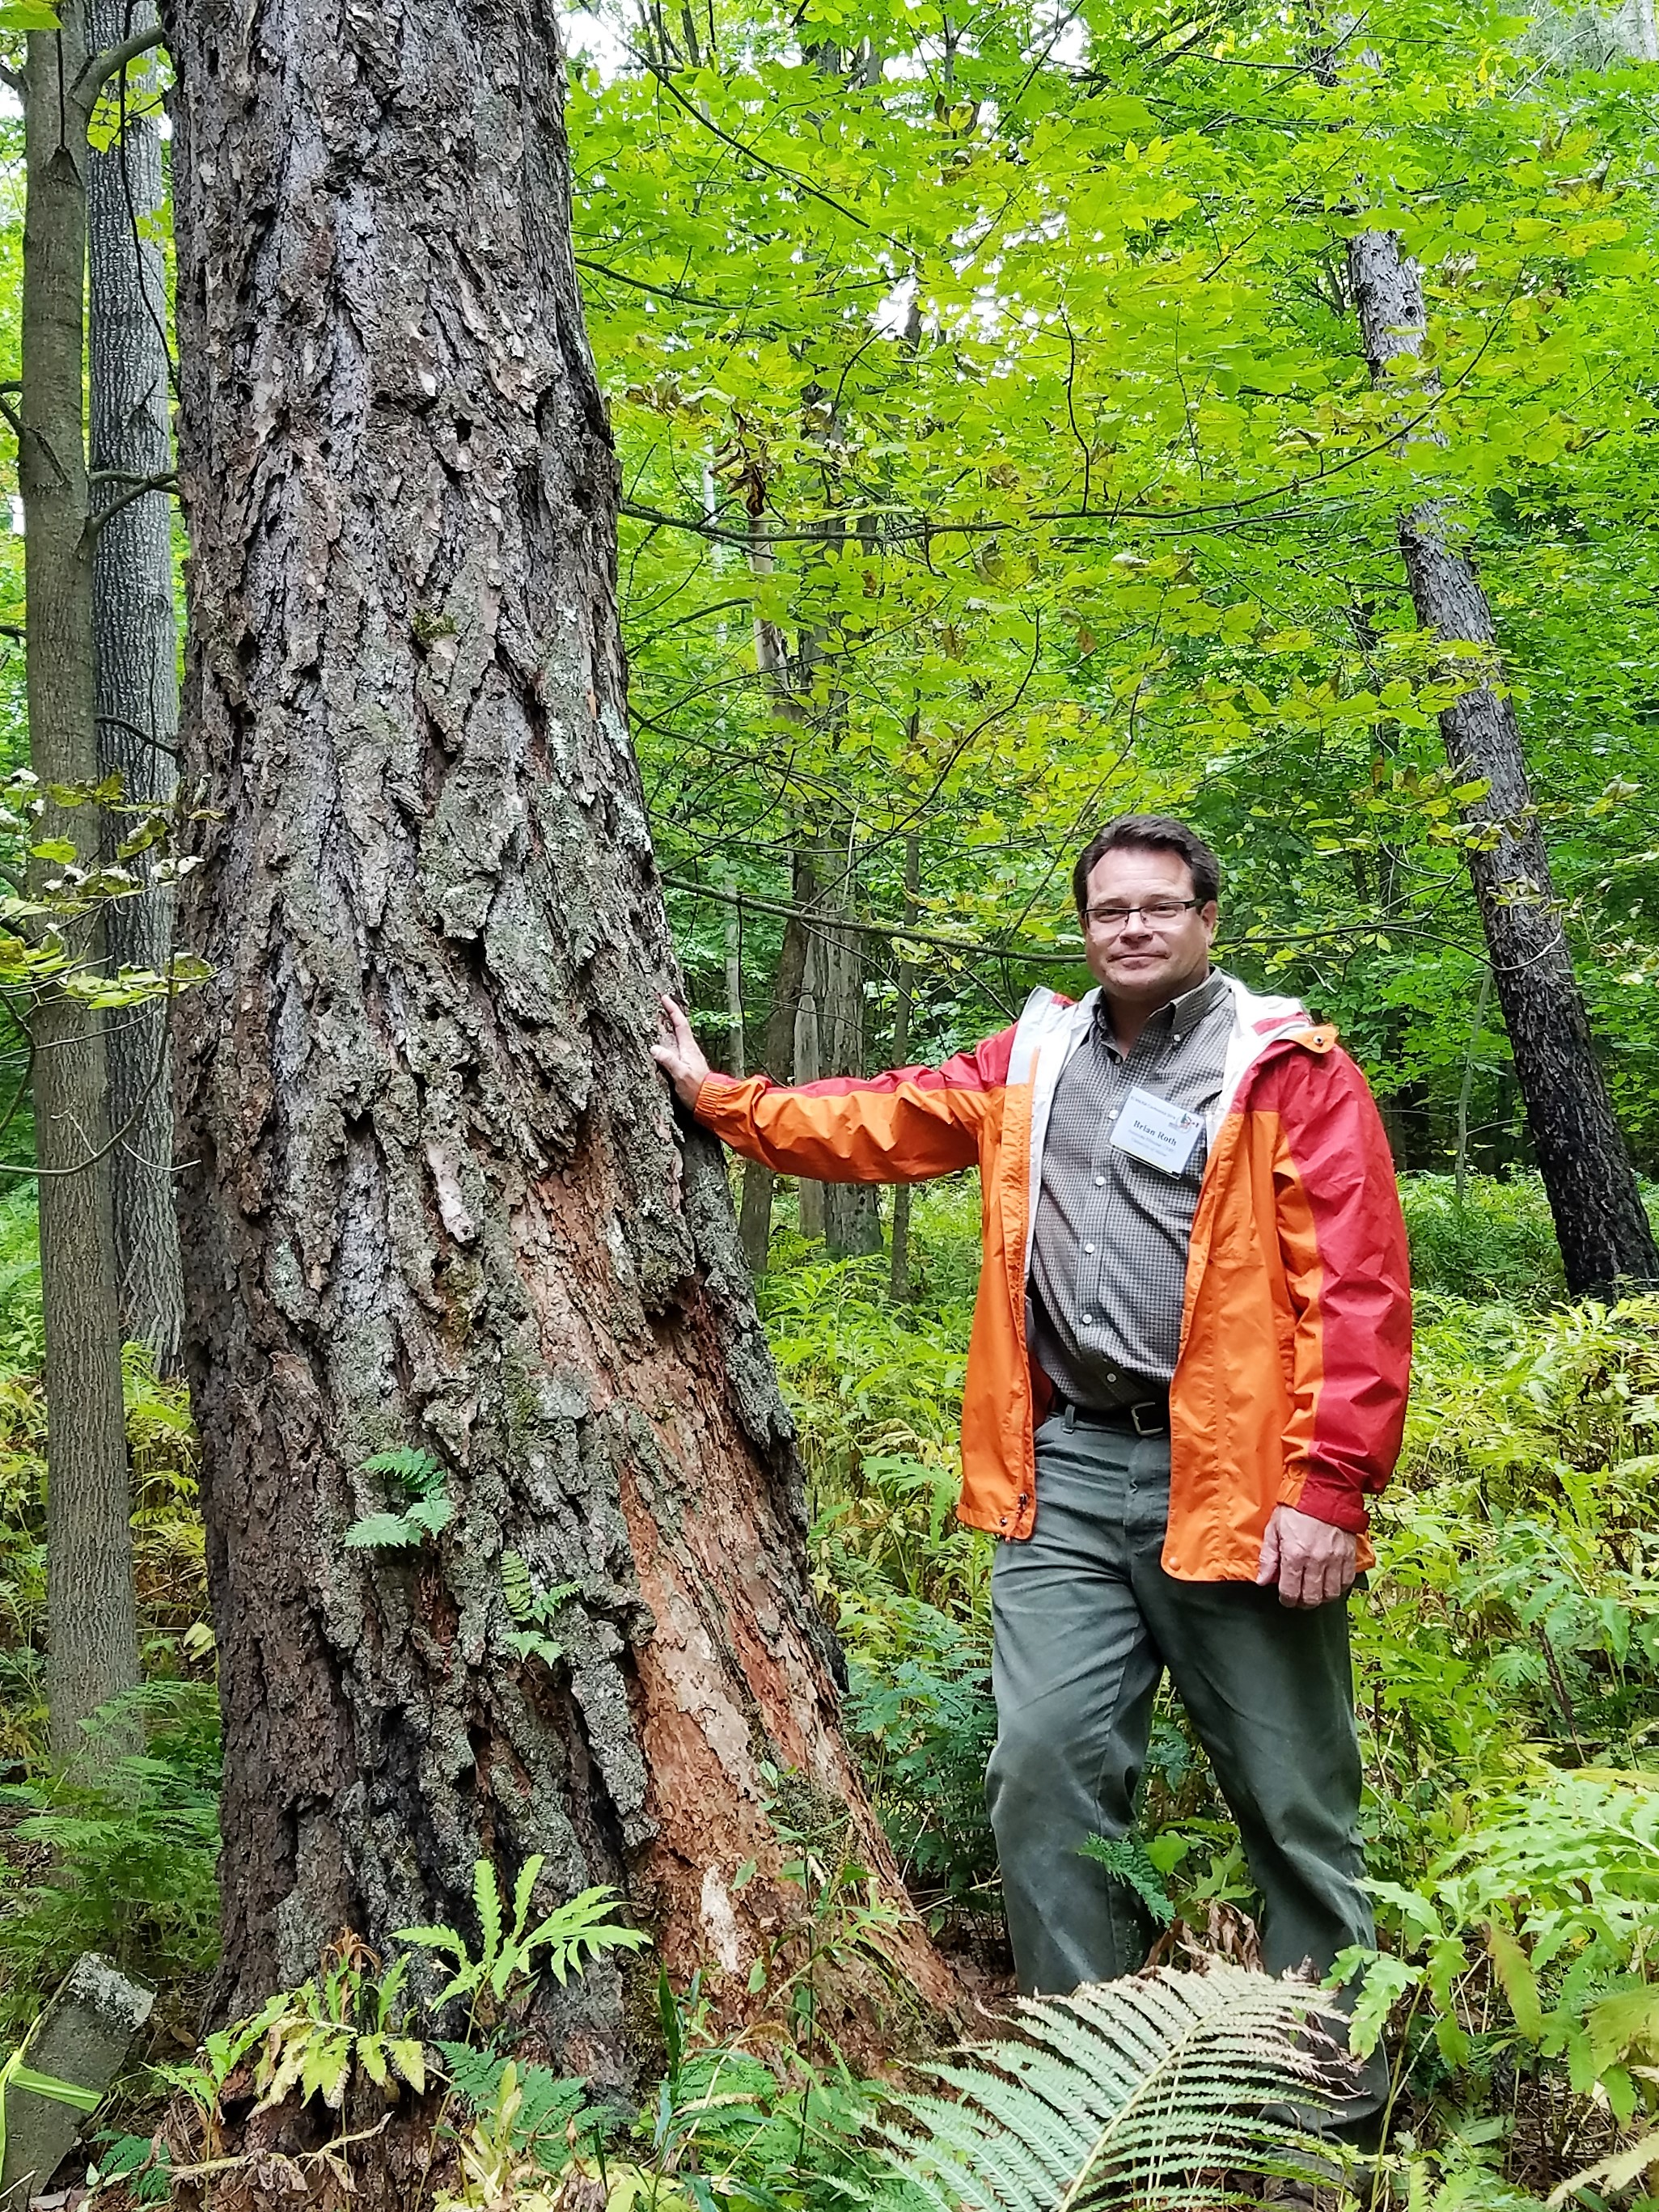 71-year-old-larch-at-jericho-forest-vermont